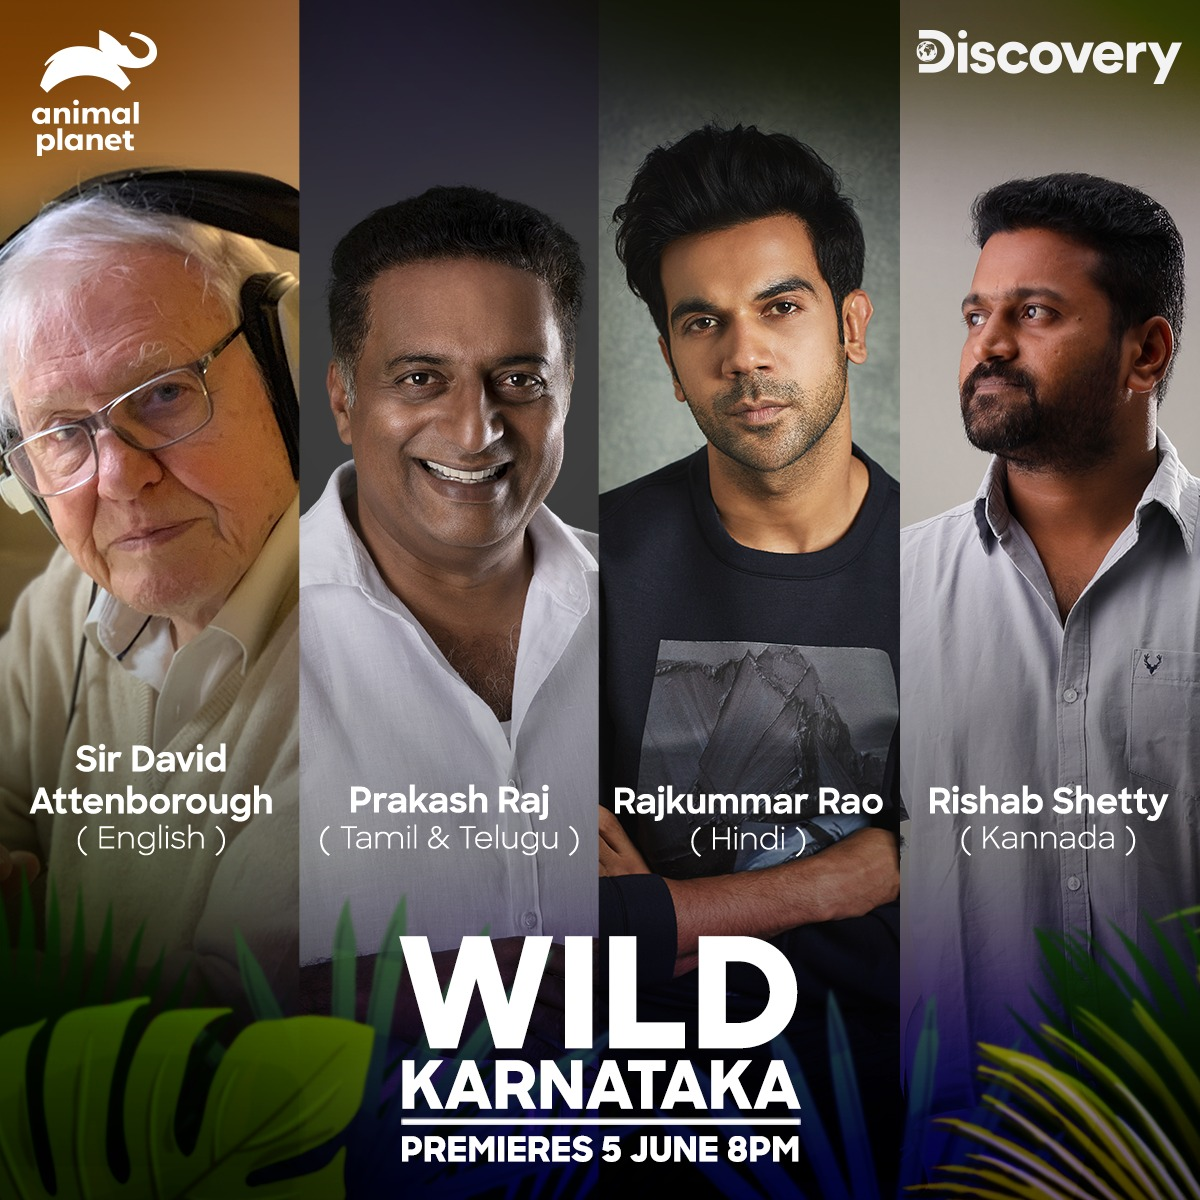 Discovery Network brings together iconic stars to celebrate India's wildlife with the premiere of 'Wild Karnataka' on World Environment Day